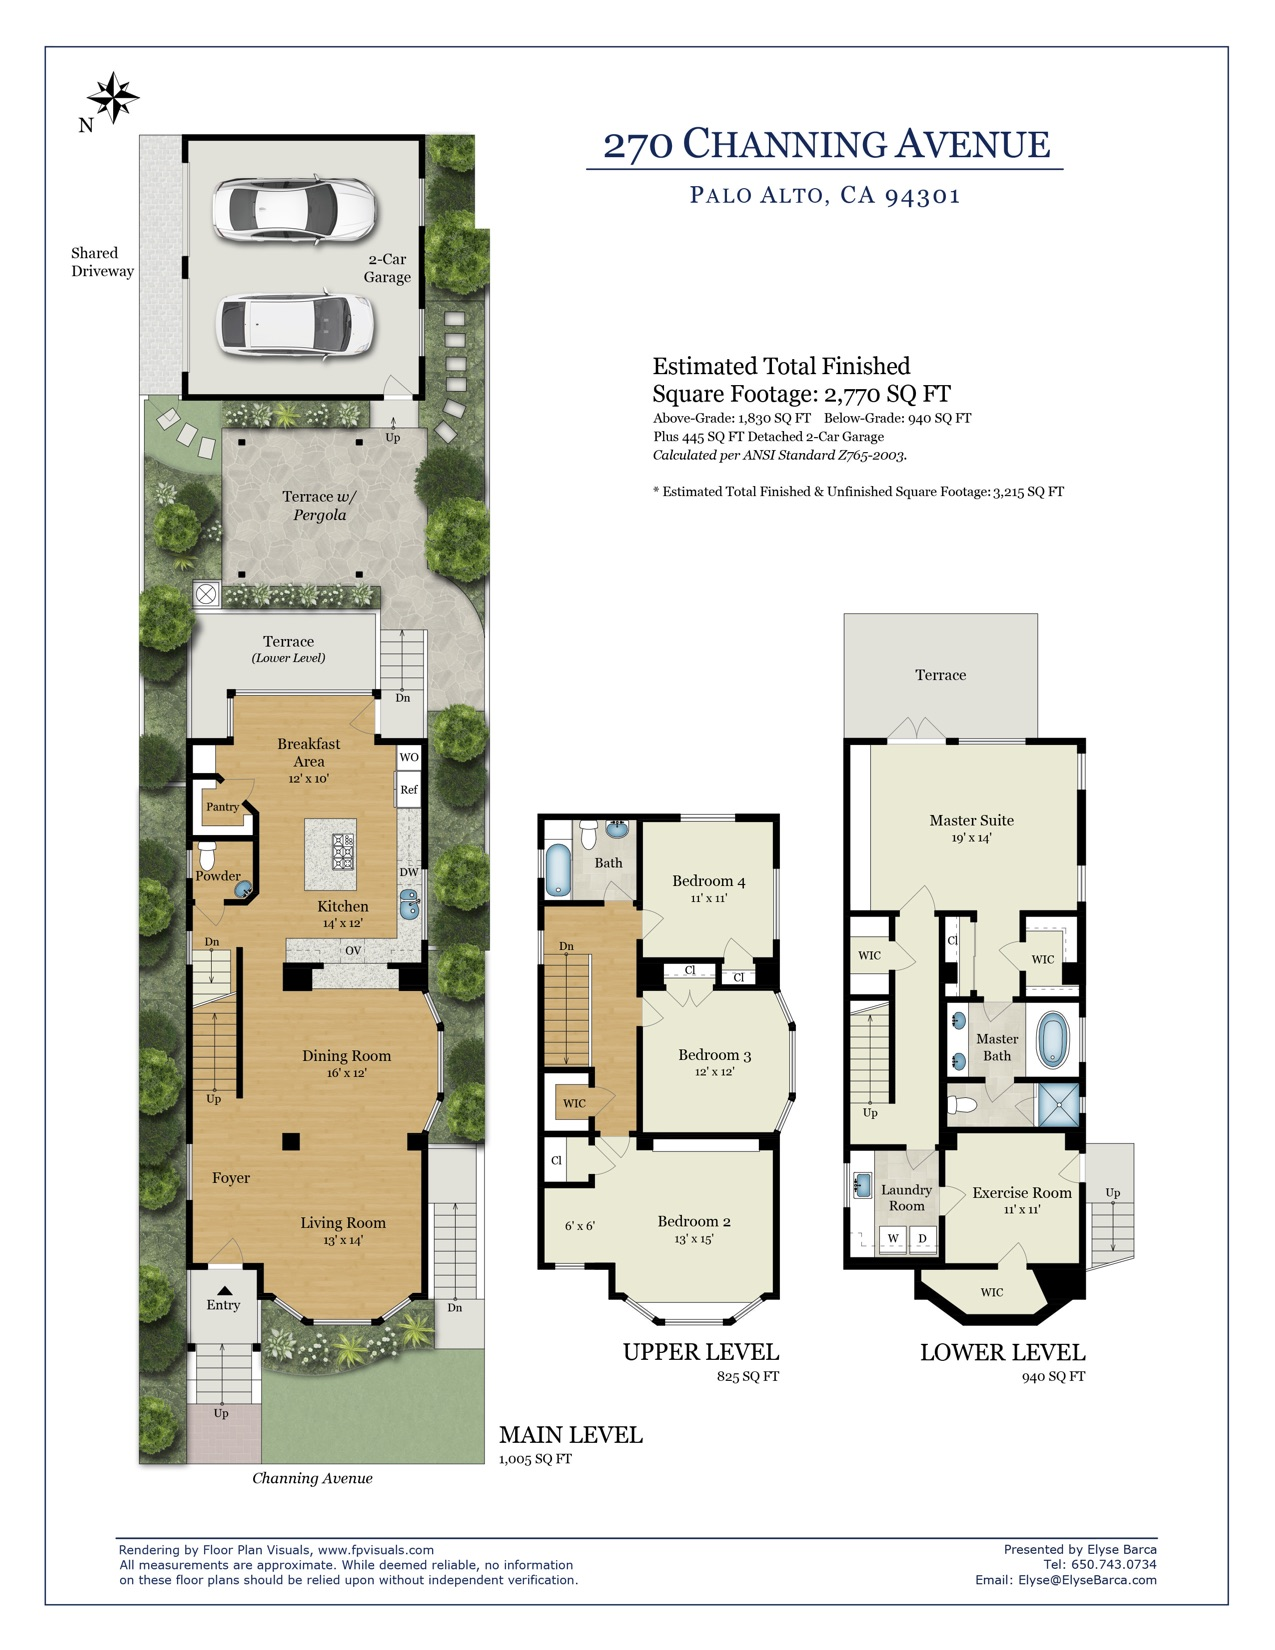 270ChanningAve-FloorPlan.jpg